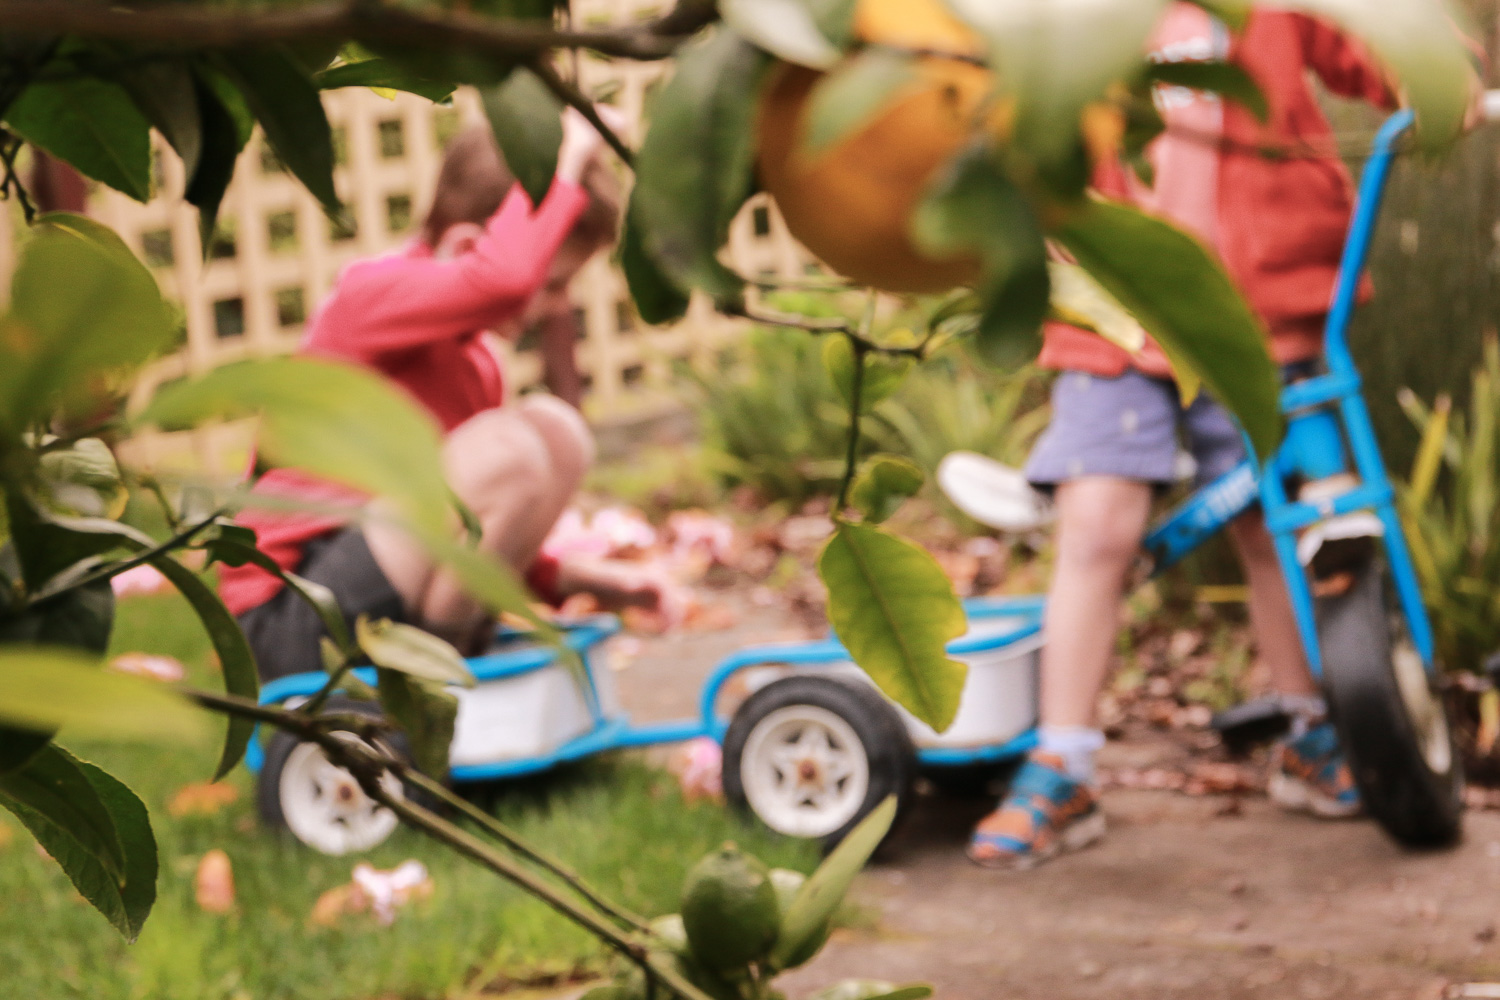 lemon-tree-in-focus-boys-playing-on-trike-in-background-out-of-focus.jpg